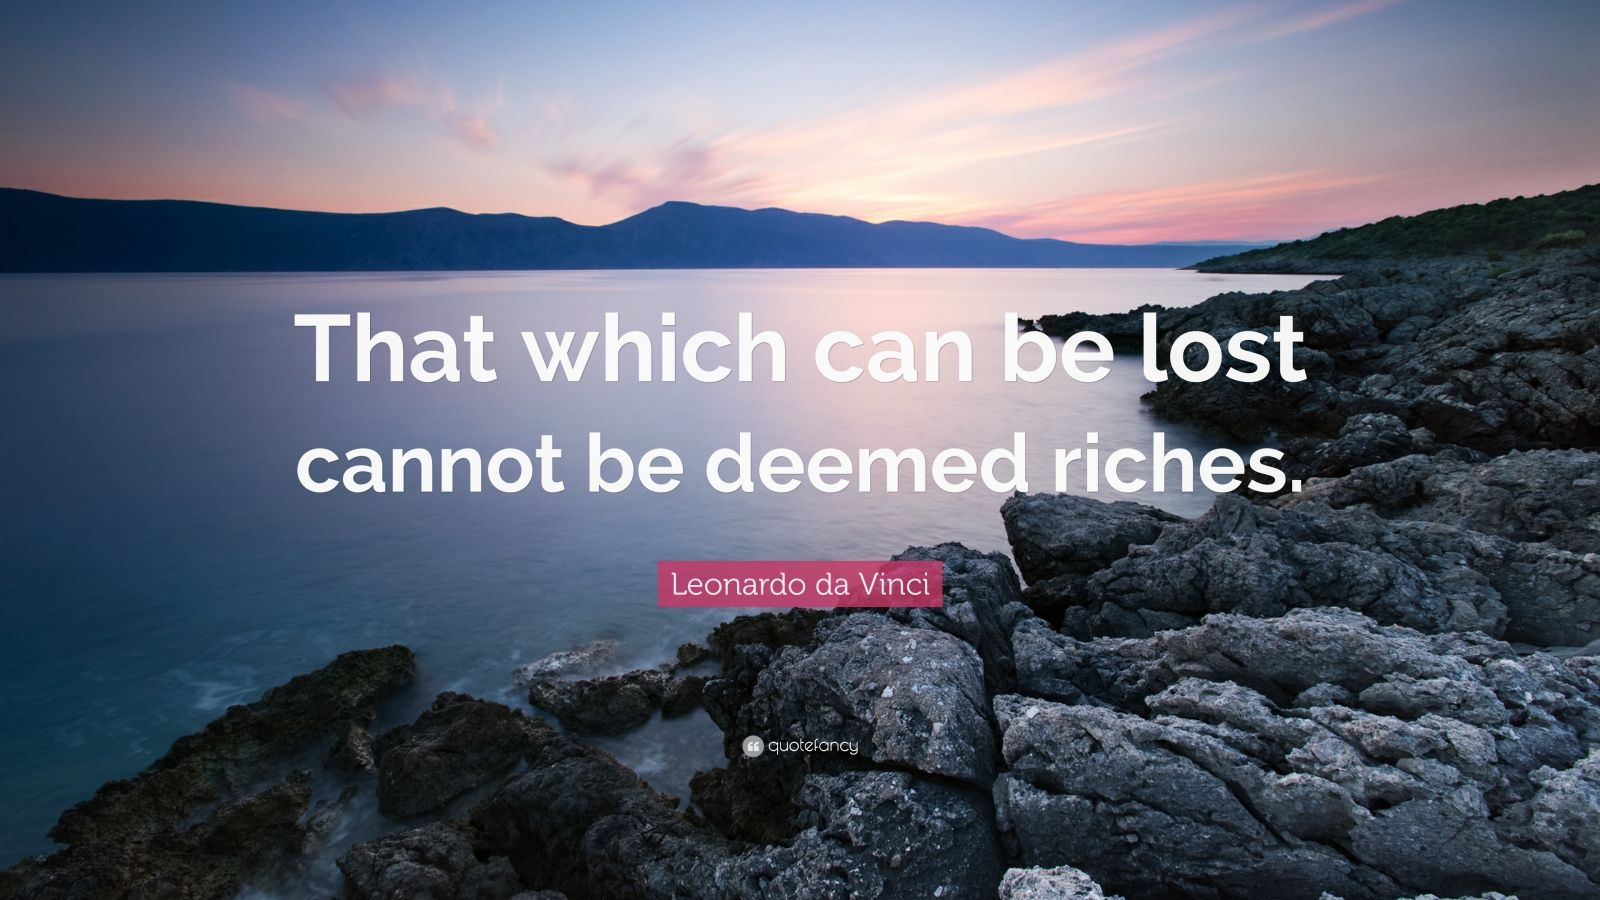 """Leonardo da Vinci Quote: """"That which can be lost cannot be deemed riches."""""""